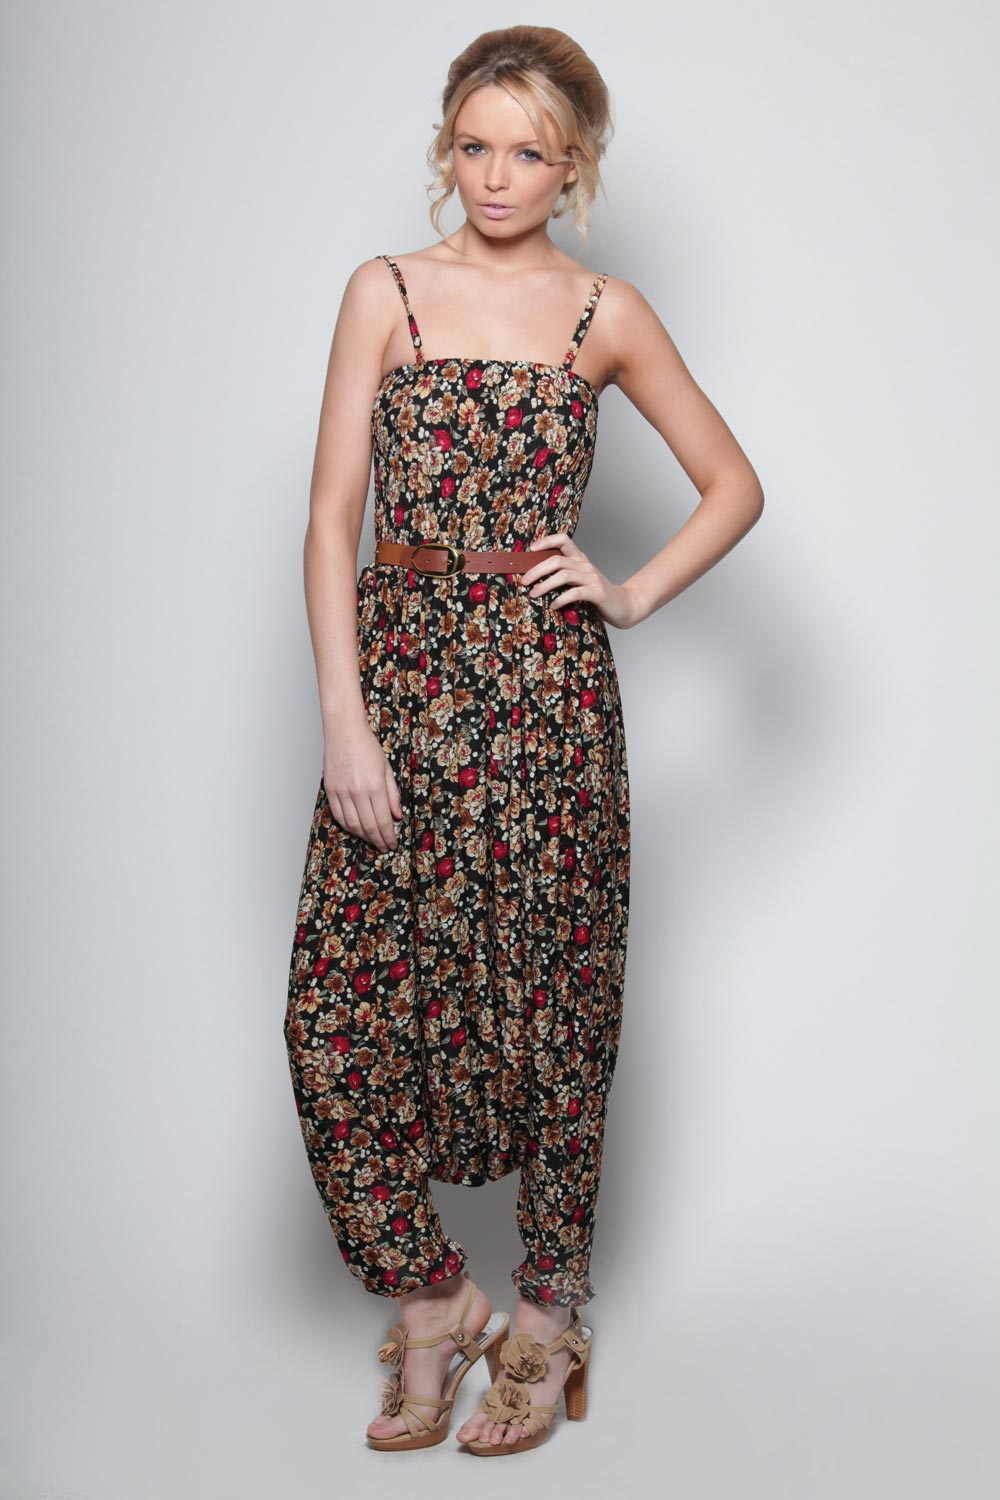 Boohoo-Martine-Floral-Draped-Harem-Jumpsuit-in-Black-BNWT